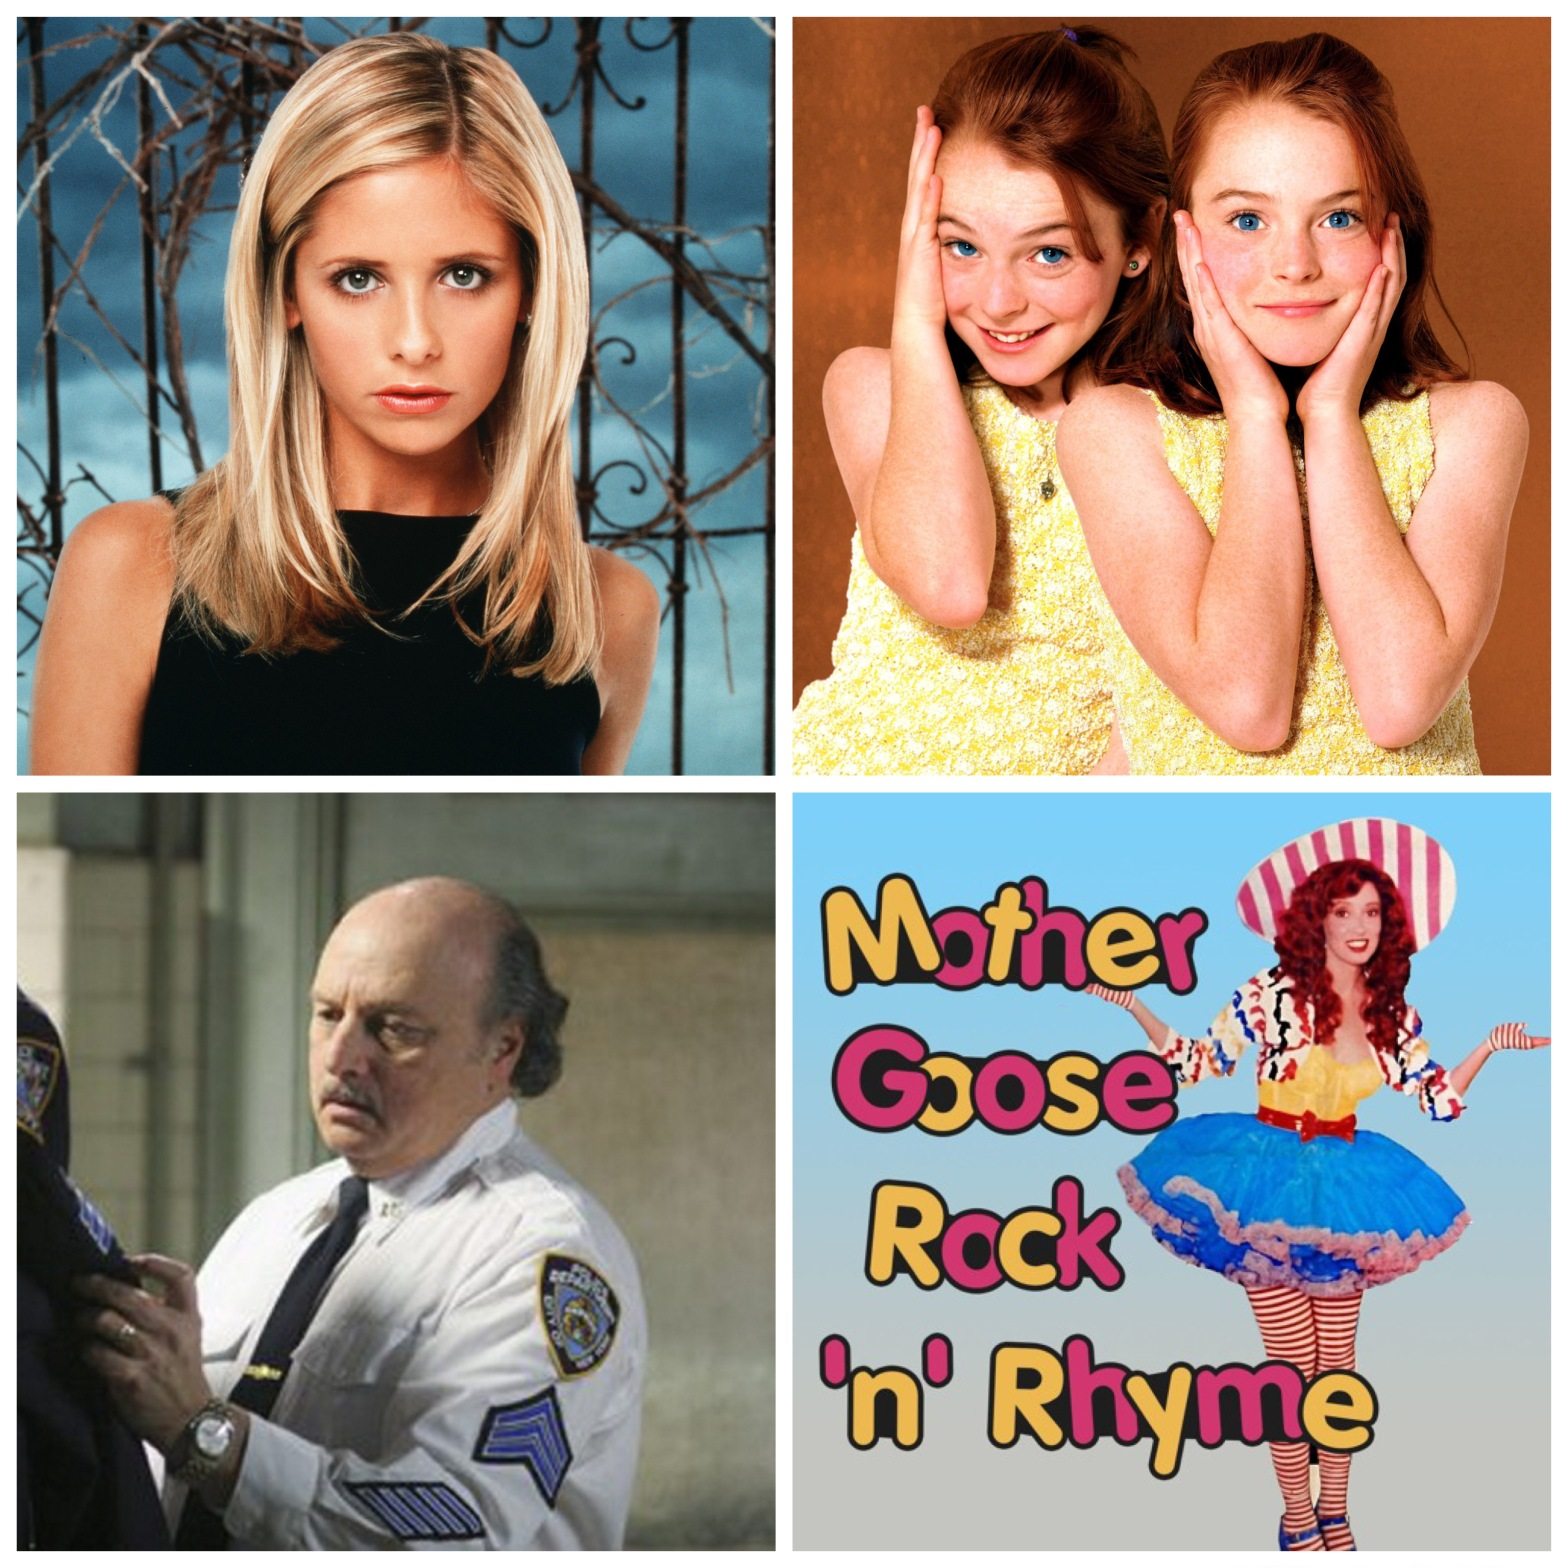 Sarah Michelle Gellar. Lindsay Lohan in The Parent Trap. The guy you think of when you hear NYPD Blue. And Shelley Duvall's Mother Goose Rock N Rhyme. All this will make sense when you listen to this week's podcast episode.